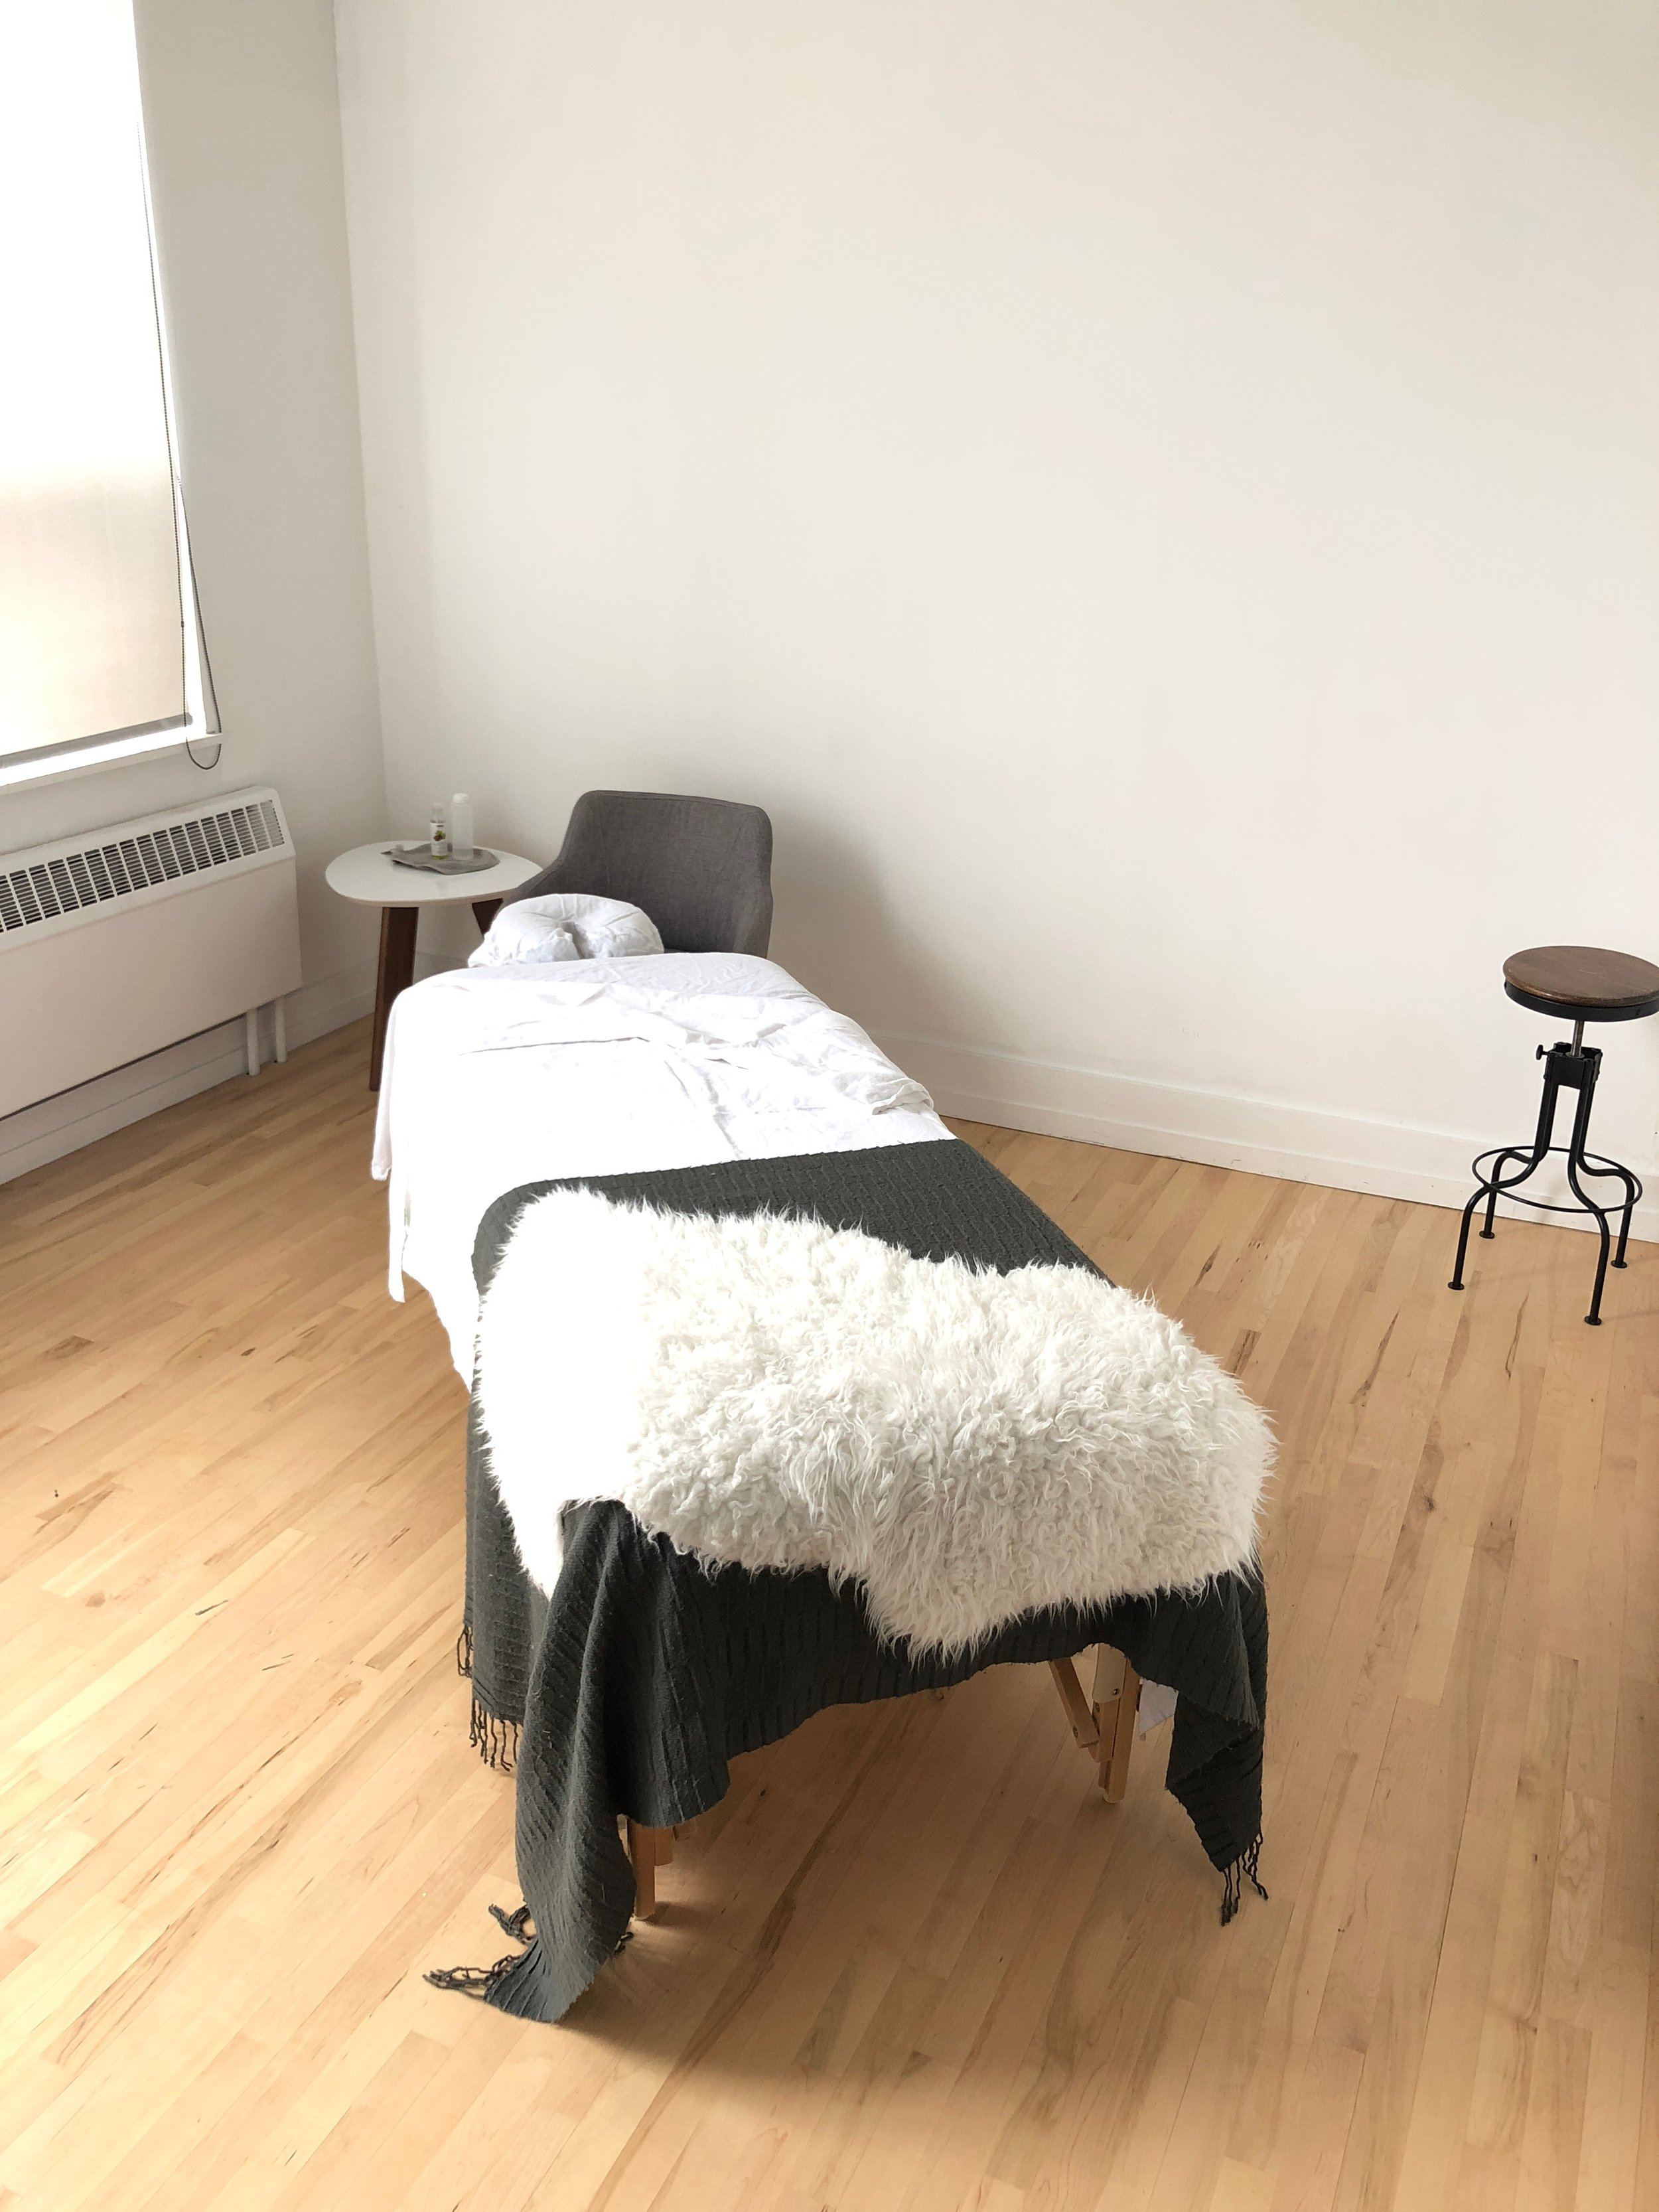 Massage Therapist Chair We Are Hiring A Massage Therapist Ebb Flow Movement Inc